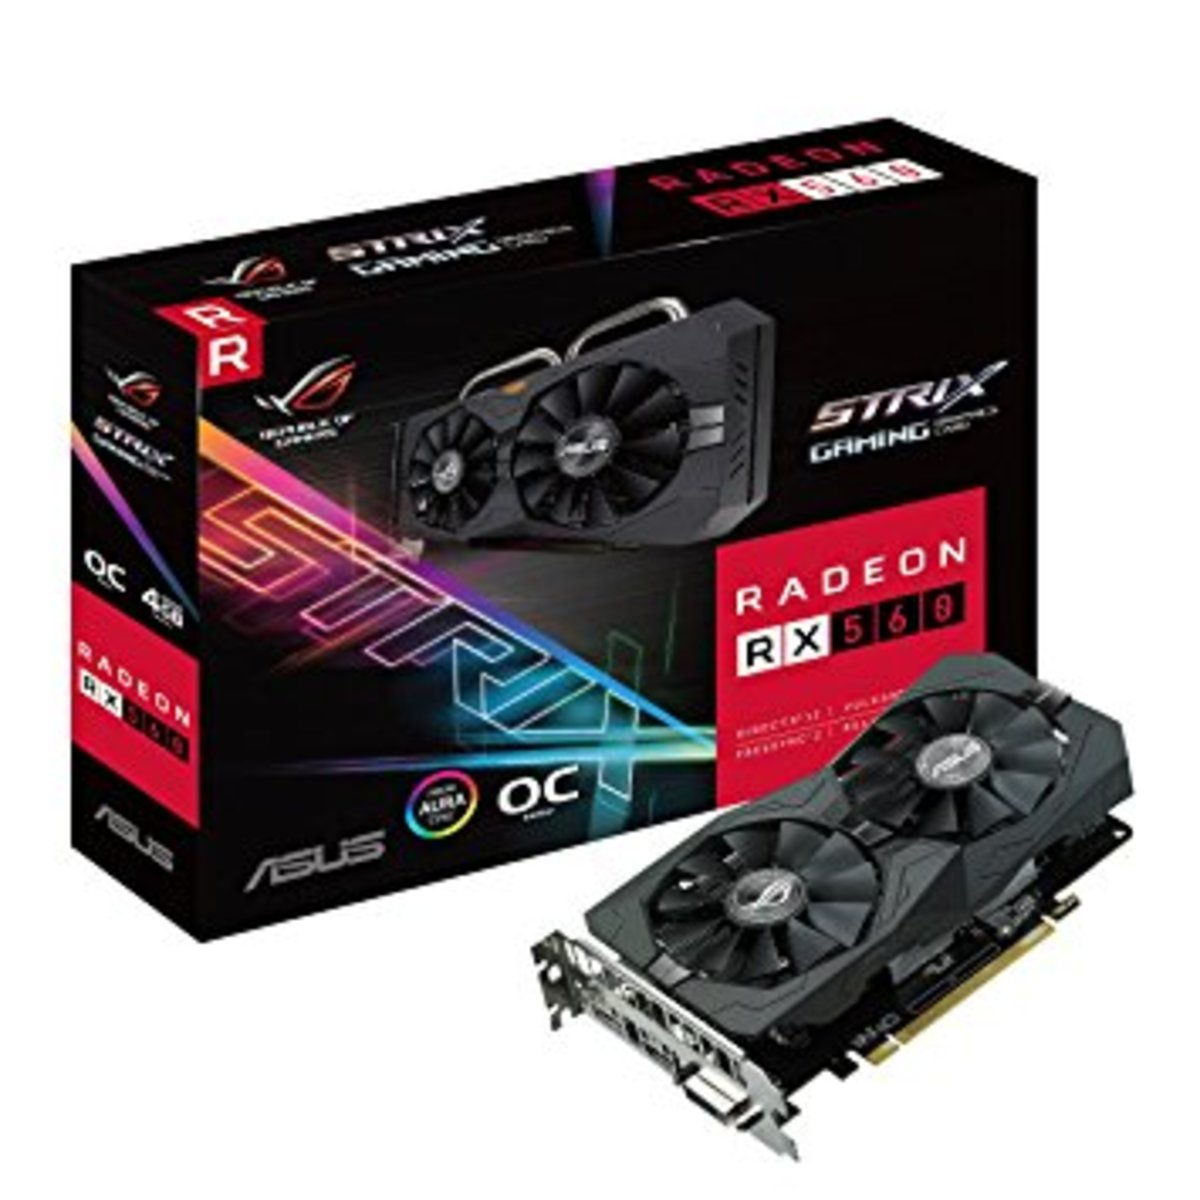 frustration-in-the-gaming-graphics-card-landscape-is-the-future-of-gaming-in-jeopardy